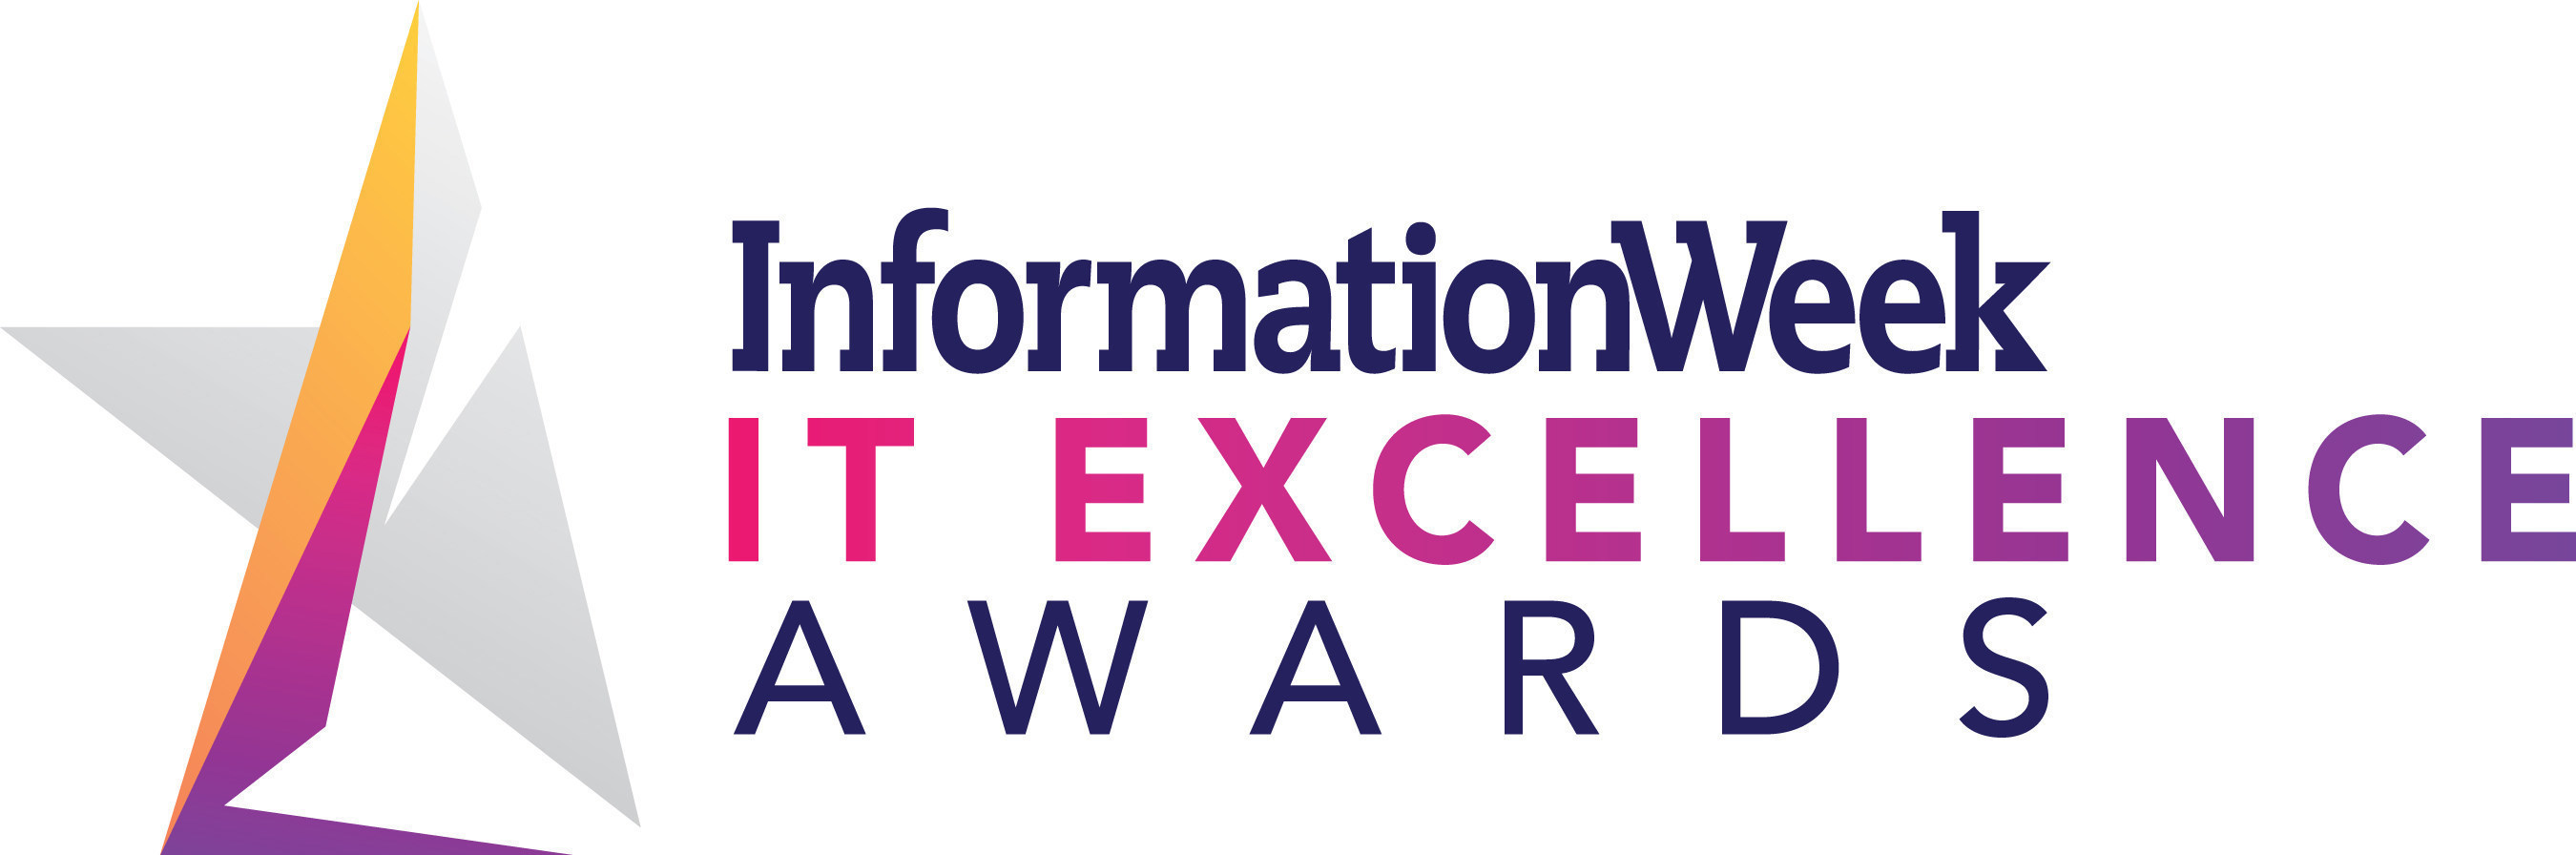 InformationWeek IT Excellence Awards; Submissions open November 15, 2016, and close March 3, 2017.